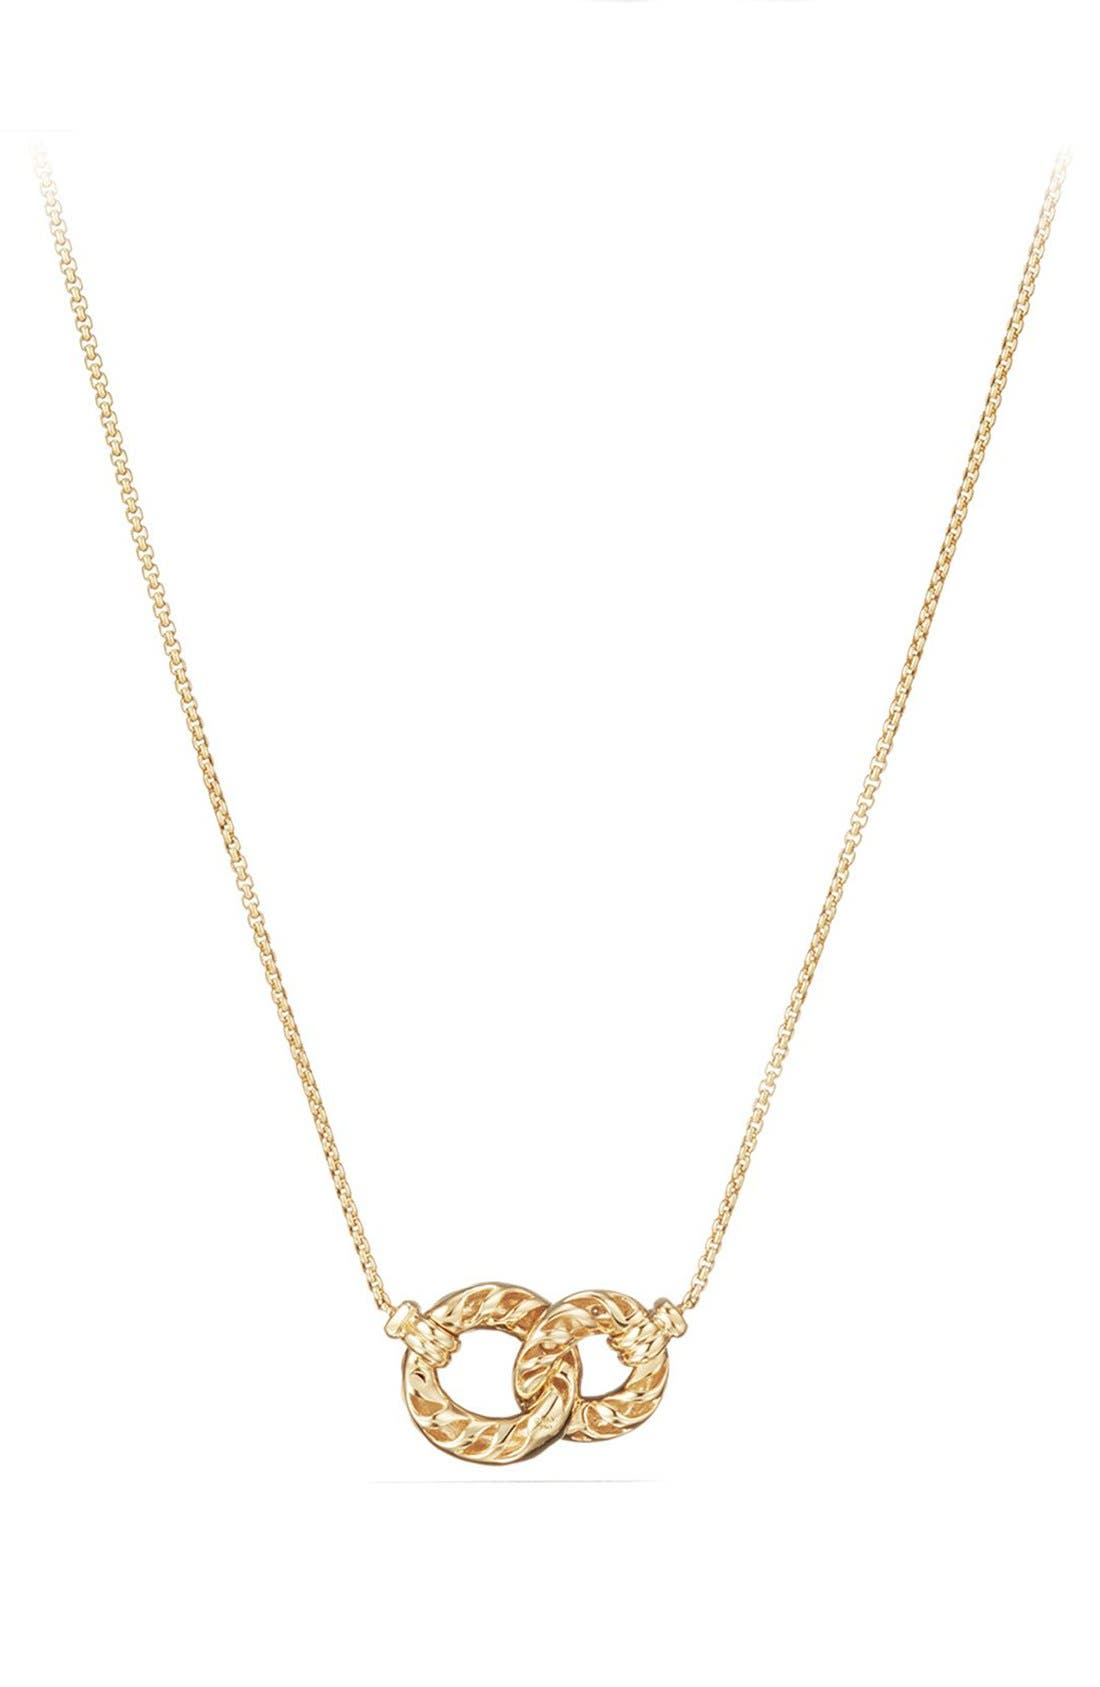 Belmont Extra-Small Double Curb Link Necklace with Diamonds in 18K Gold,                         Main,                         color, YELLOW GOLD/ DIAMOND